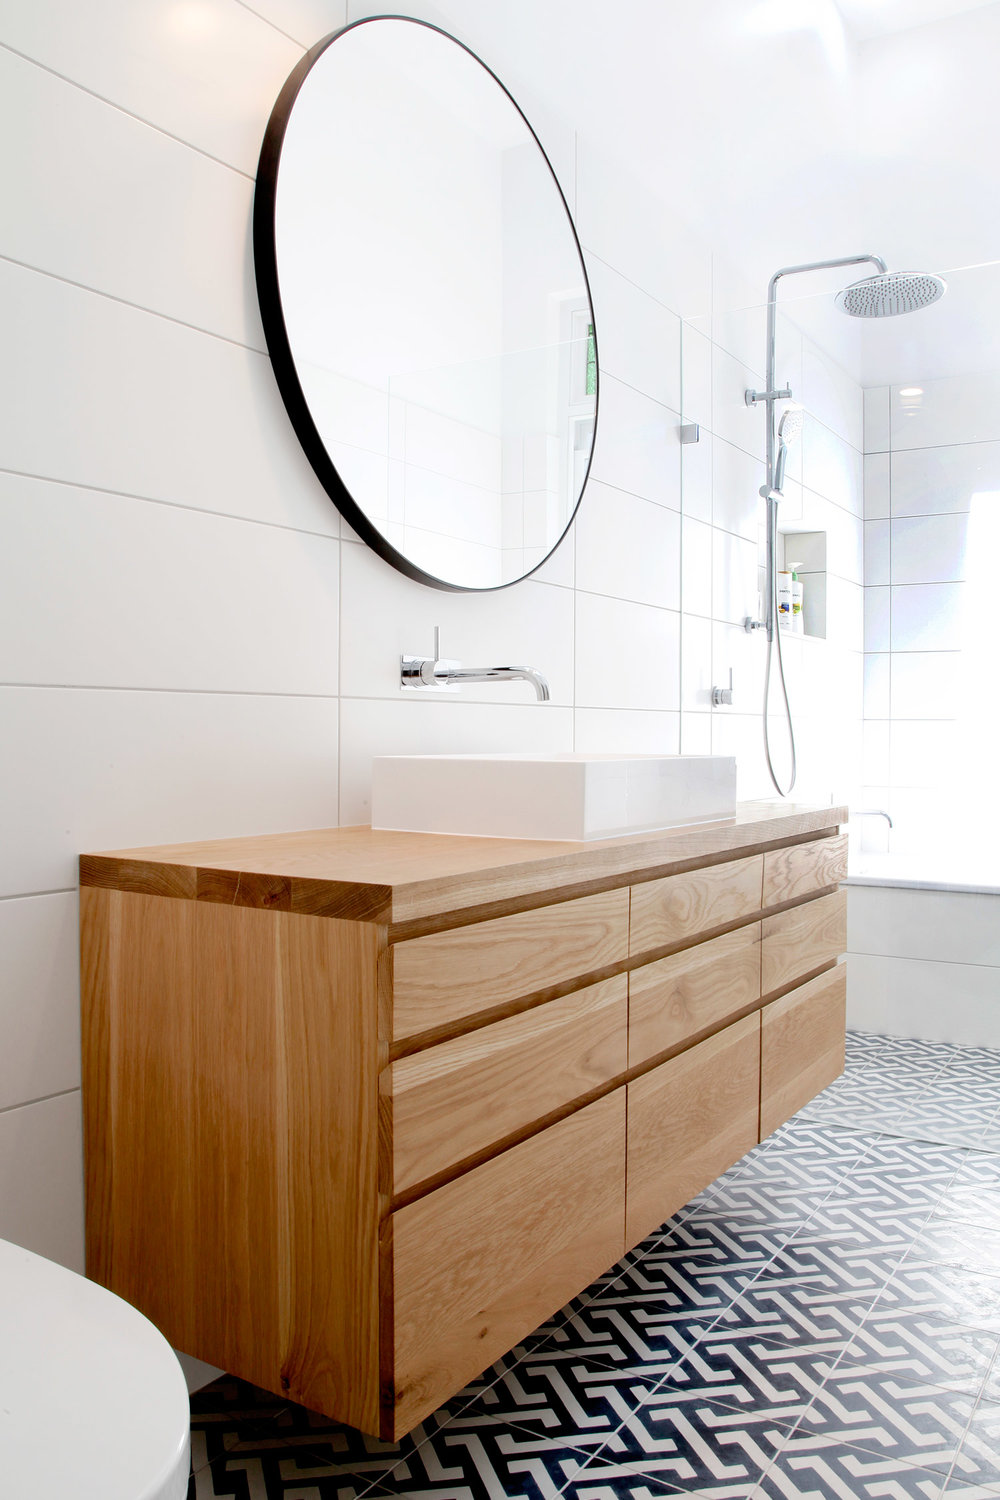 Custom Made Bathroom Vanity Units Melbourne solid timber vanities - bringing warmth to your bathroom